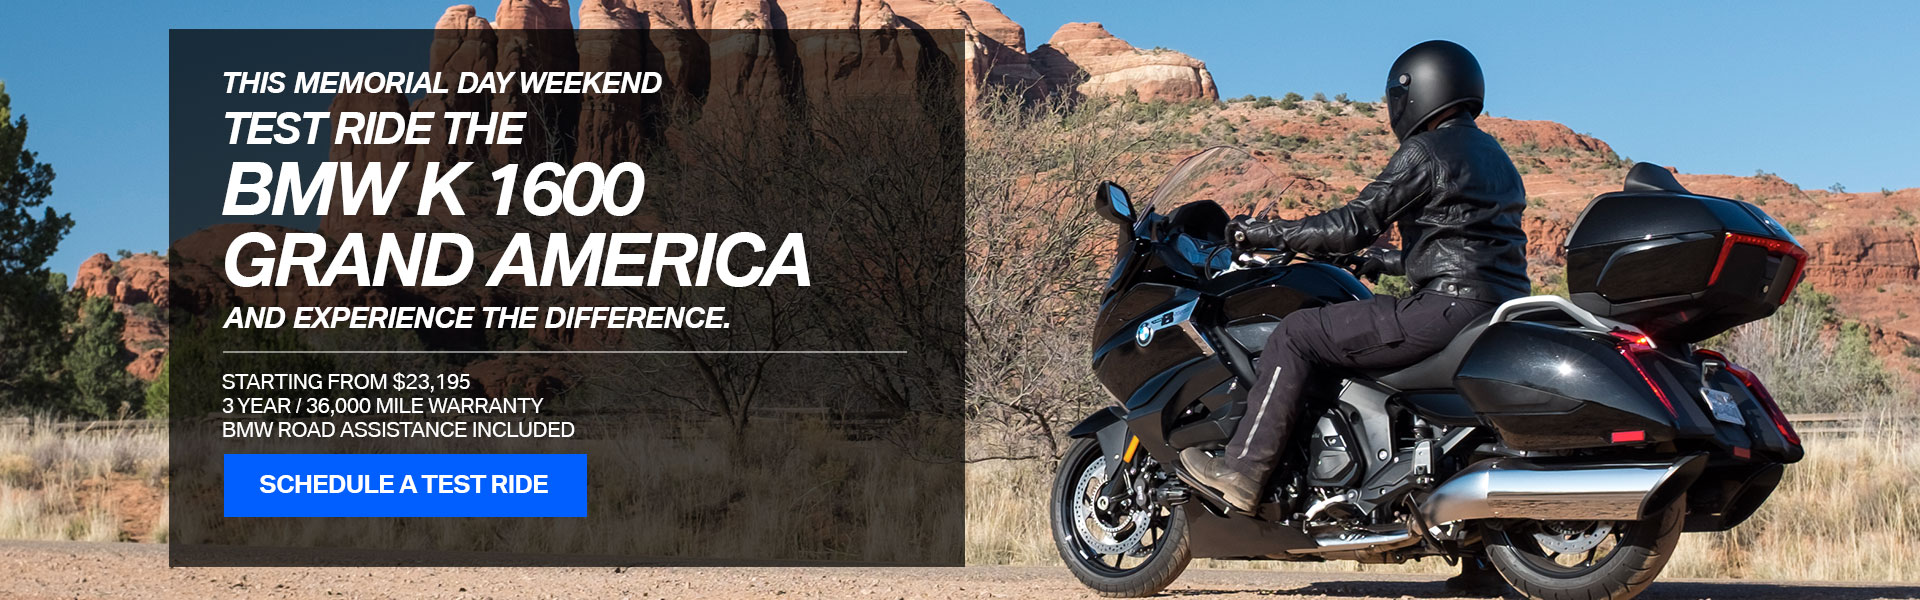 Test ride the BMW K 1600 Grand America